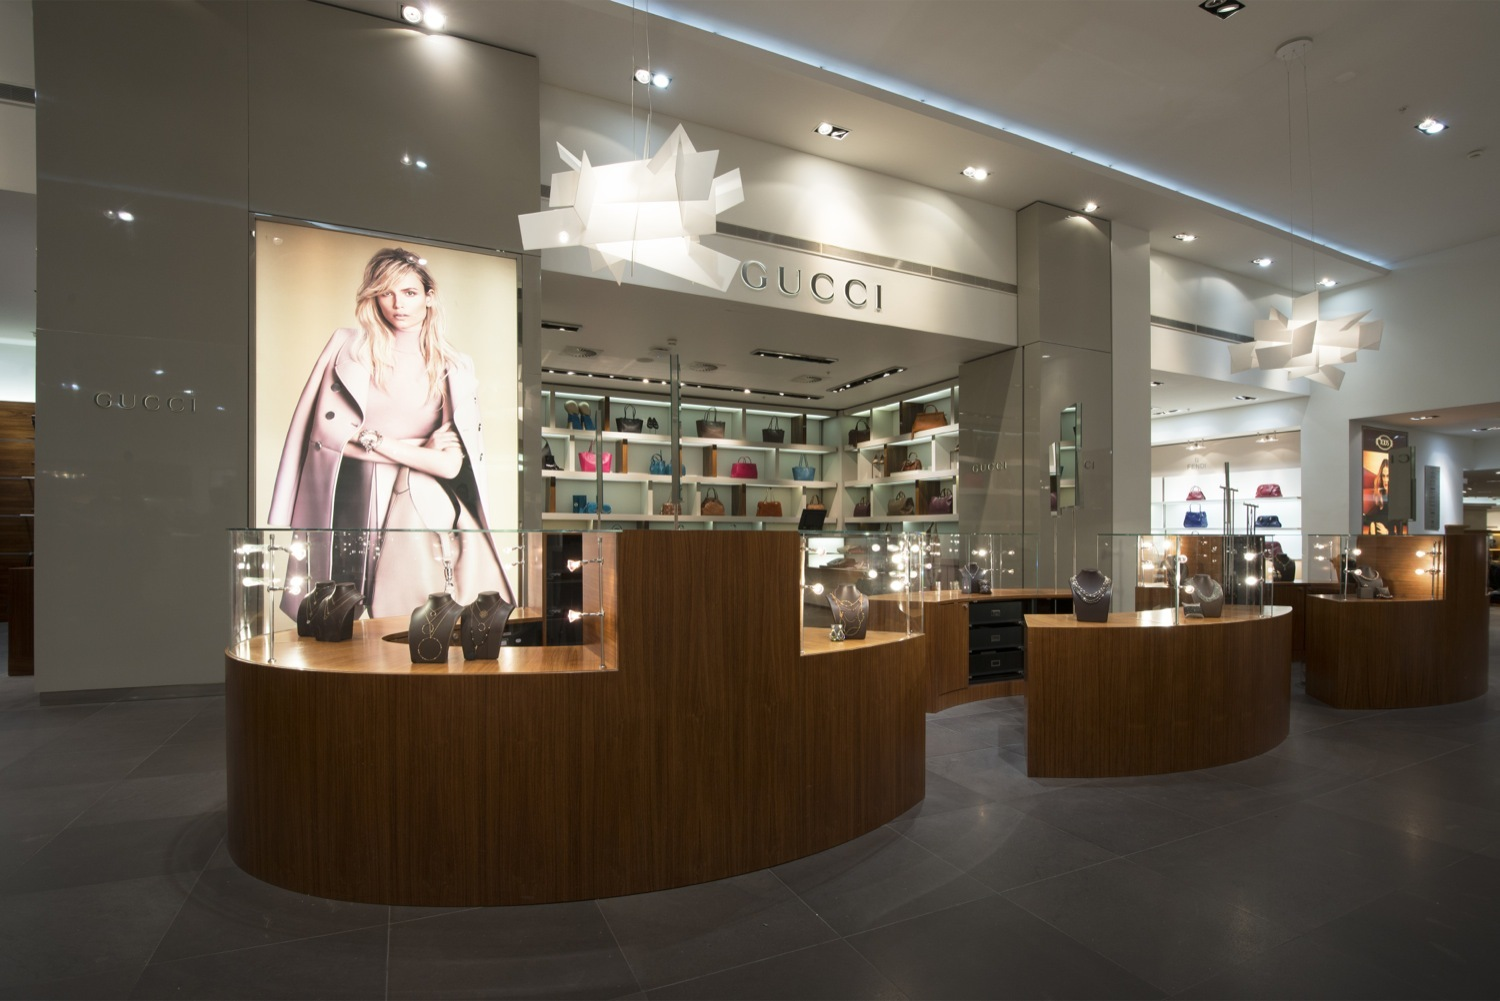 Lausanne's best boutiques and fashion stores